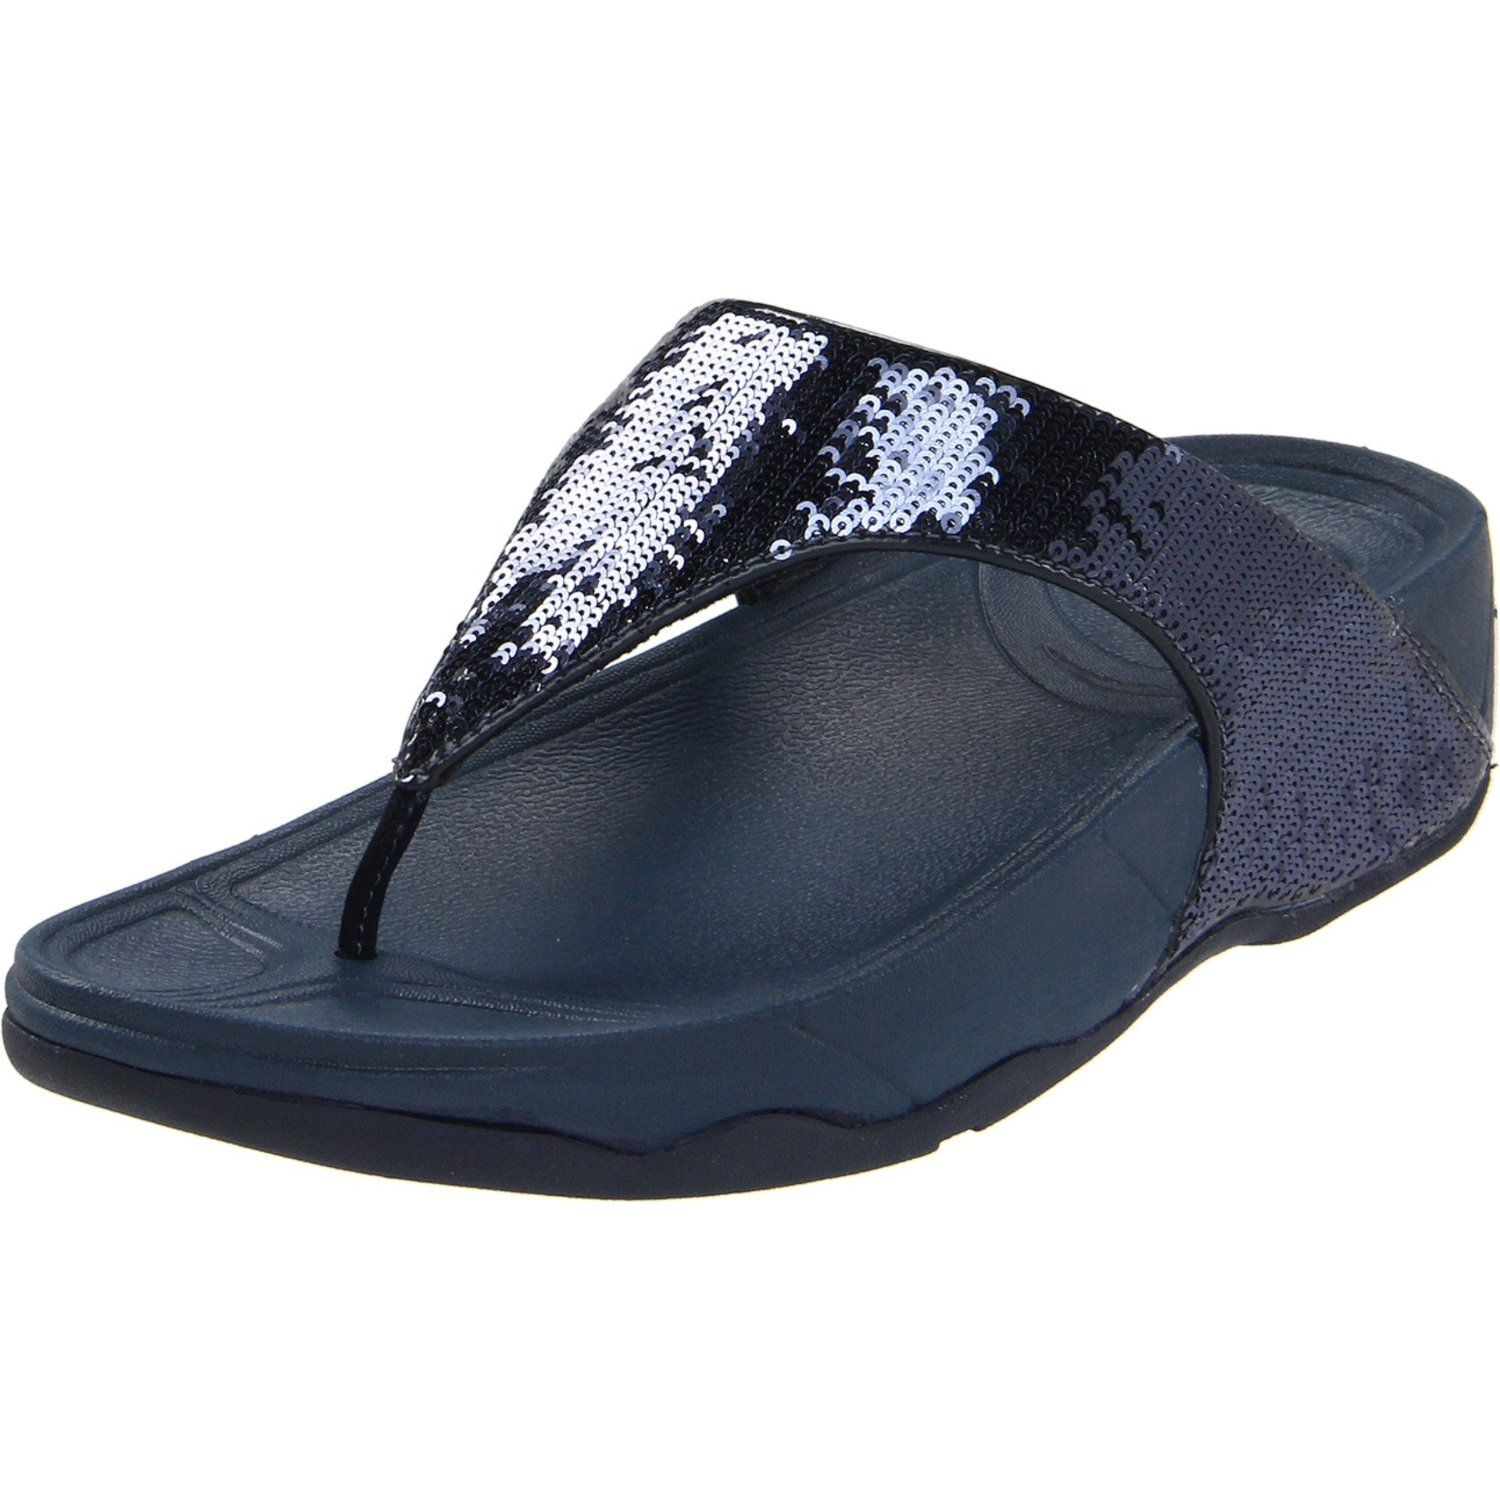 Brilliant Navy Blue Sandals Women PromotionOnline Shopping For Promotional Navy